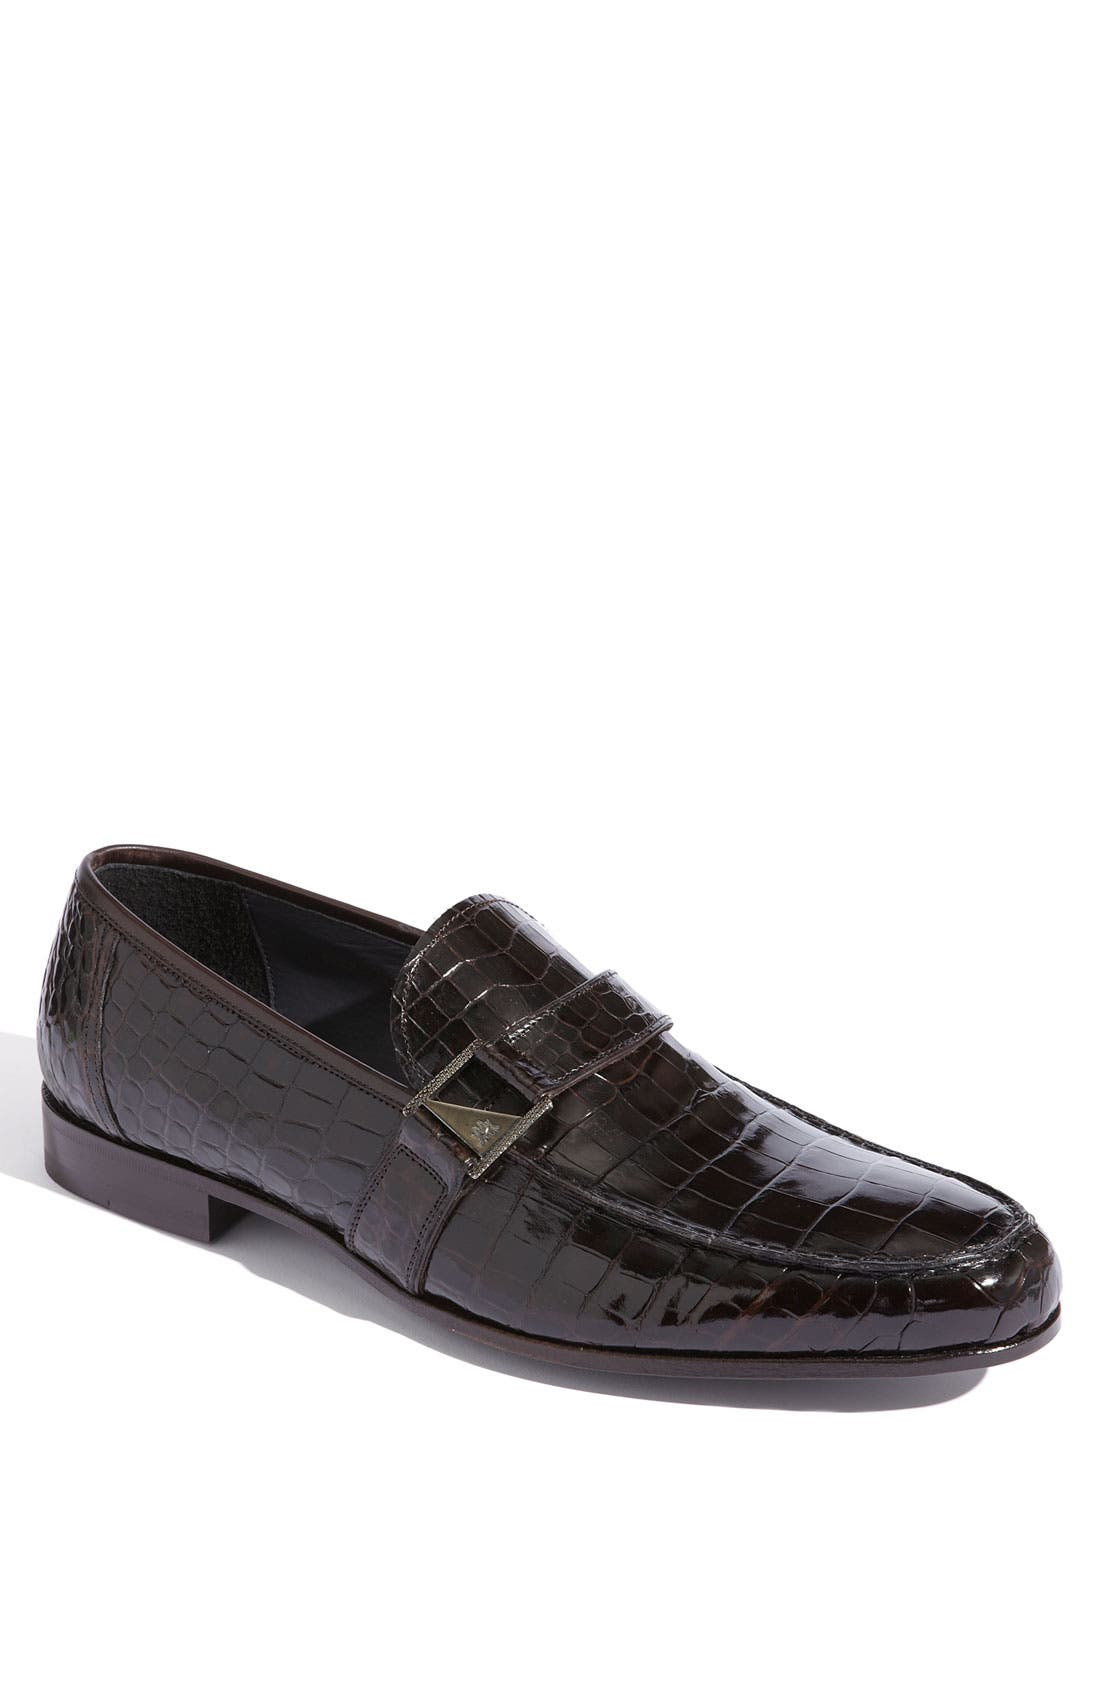 Alternate Image 1 Selected - Mezlan 'Eraldo' Loafer